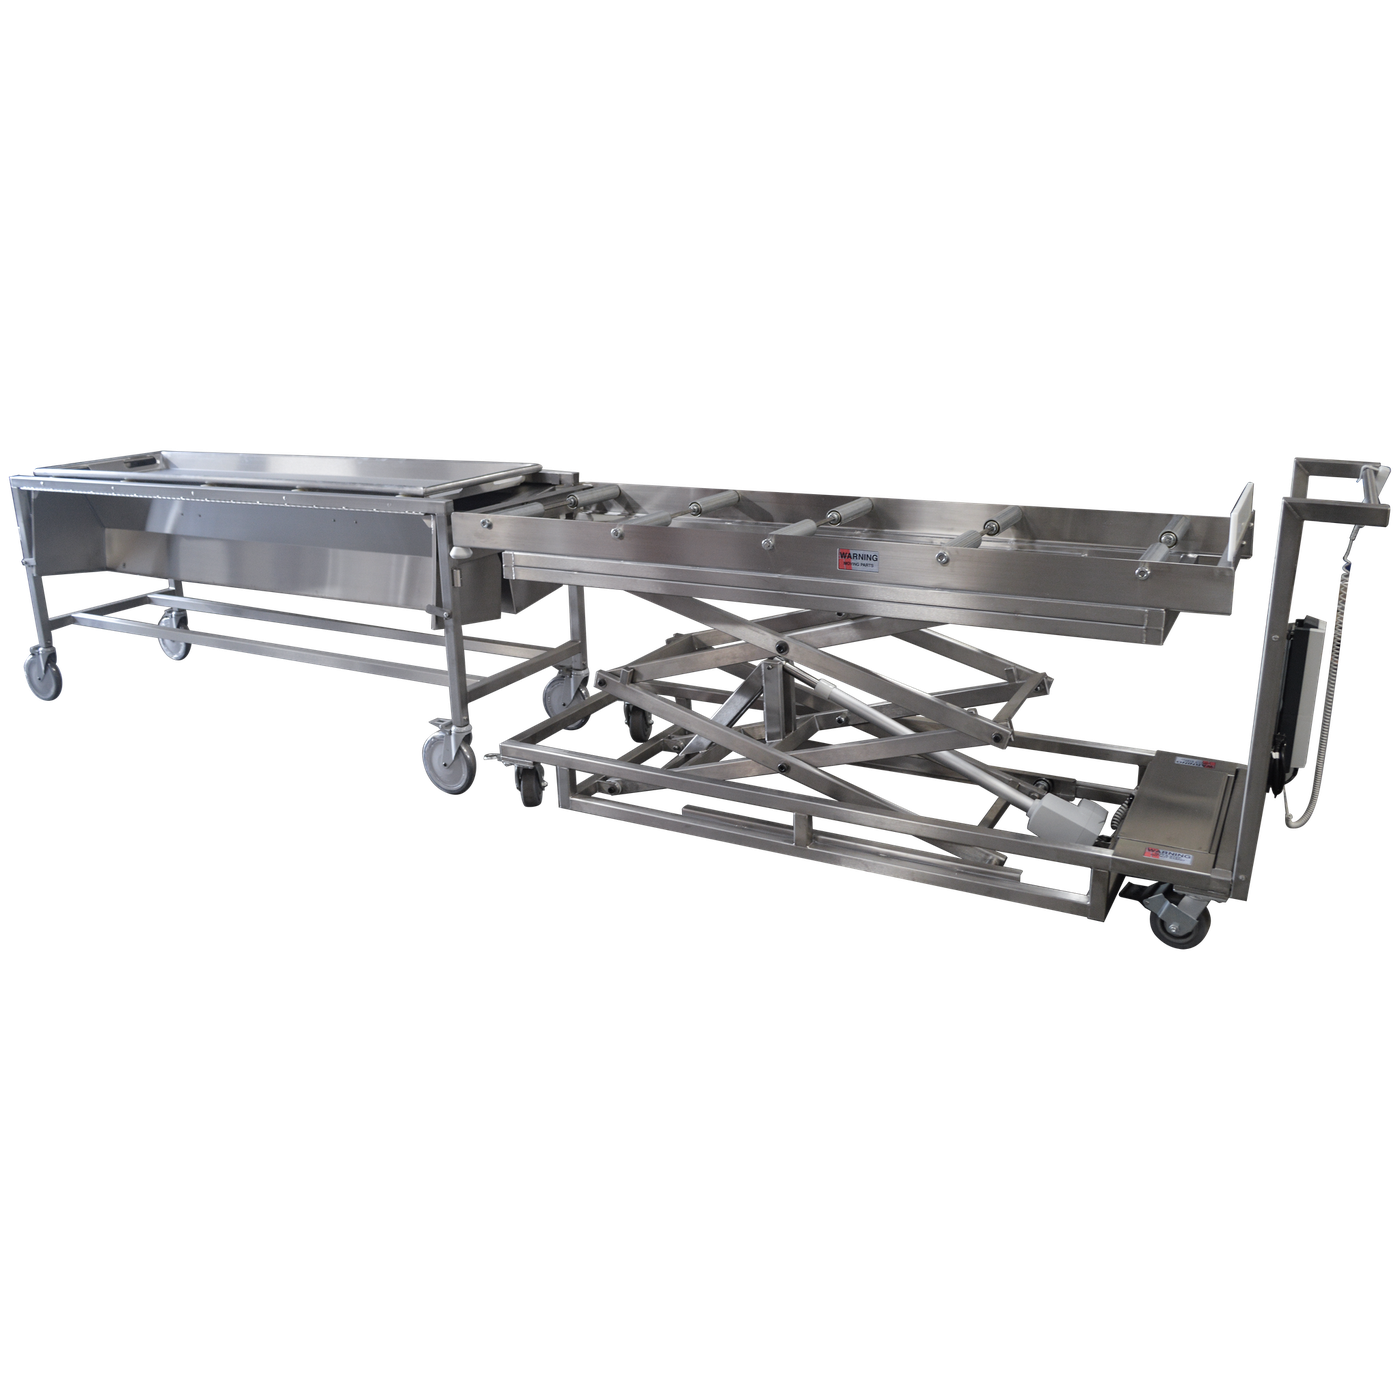 Hooded Dissection Table with Nylon Rollers-Anatomy Dissection Tables-Mortech Manufacturing Company Inc. Quality Stainless Steel Autopsy, Morgue, Funeral Home, Necropsy, Veterinary / Anatomy, Dissection Equipment and Accessories